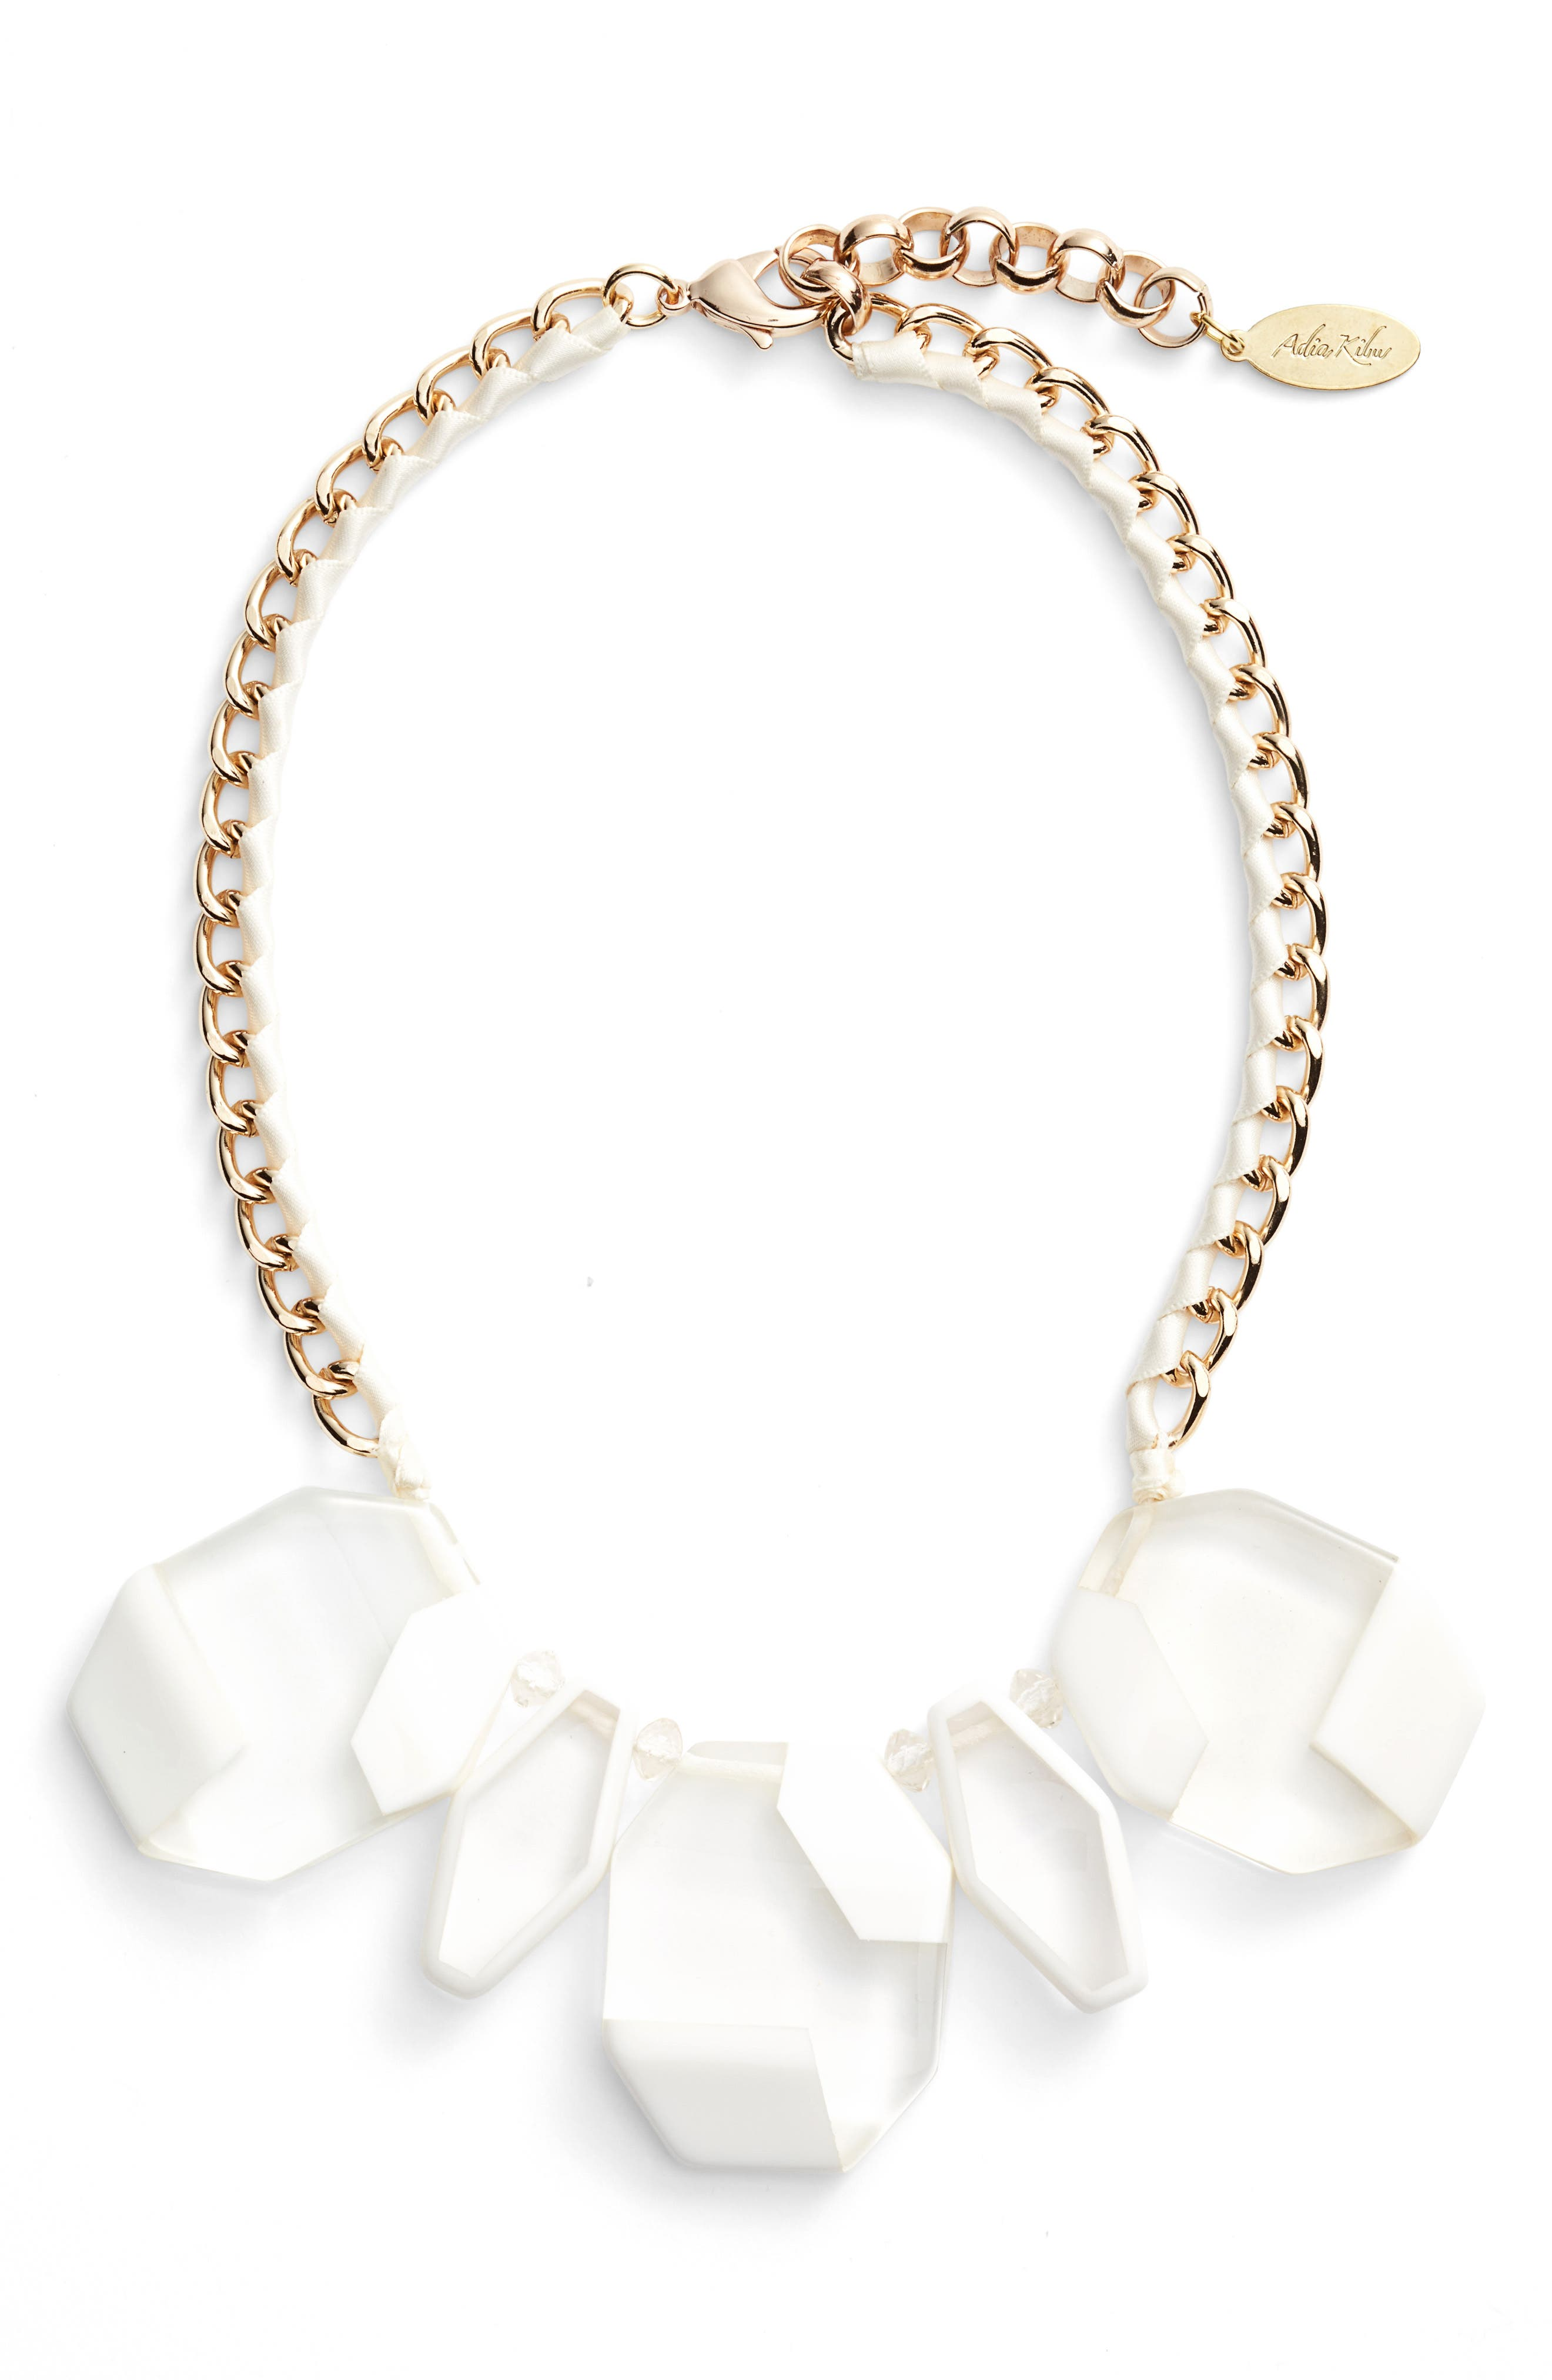 Resin Statement Necklace,                         Main,                         color, White/ Clear